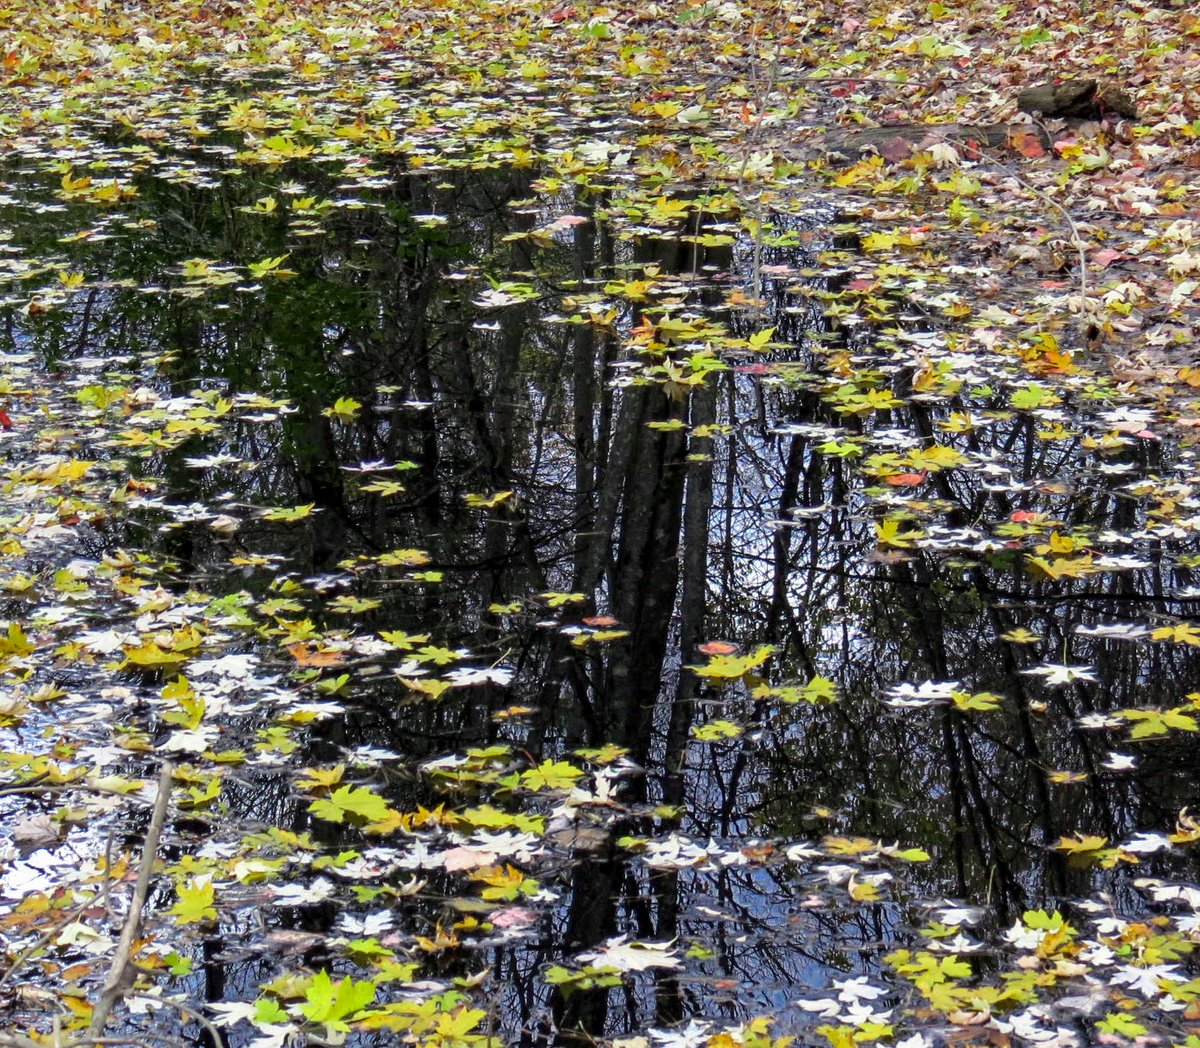 18. Leaves on Water